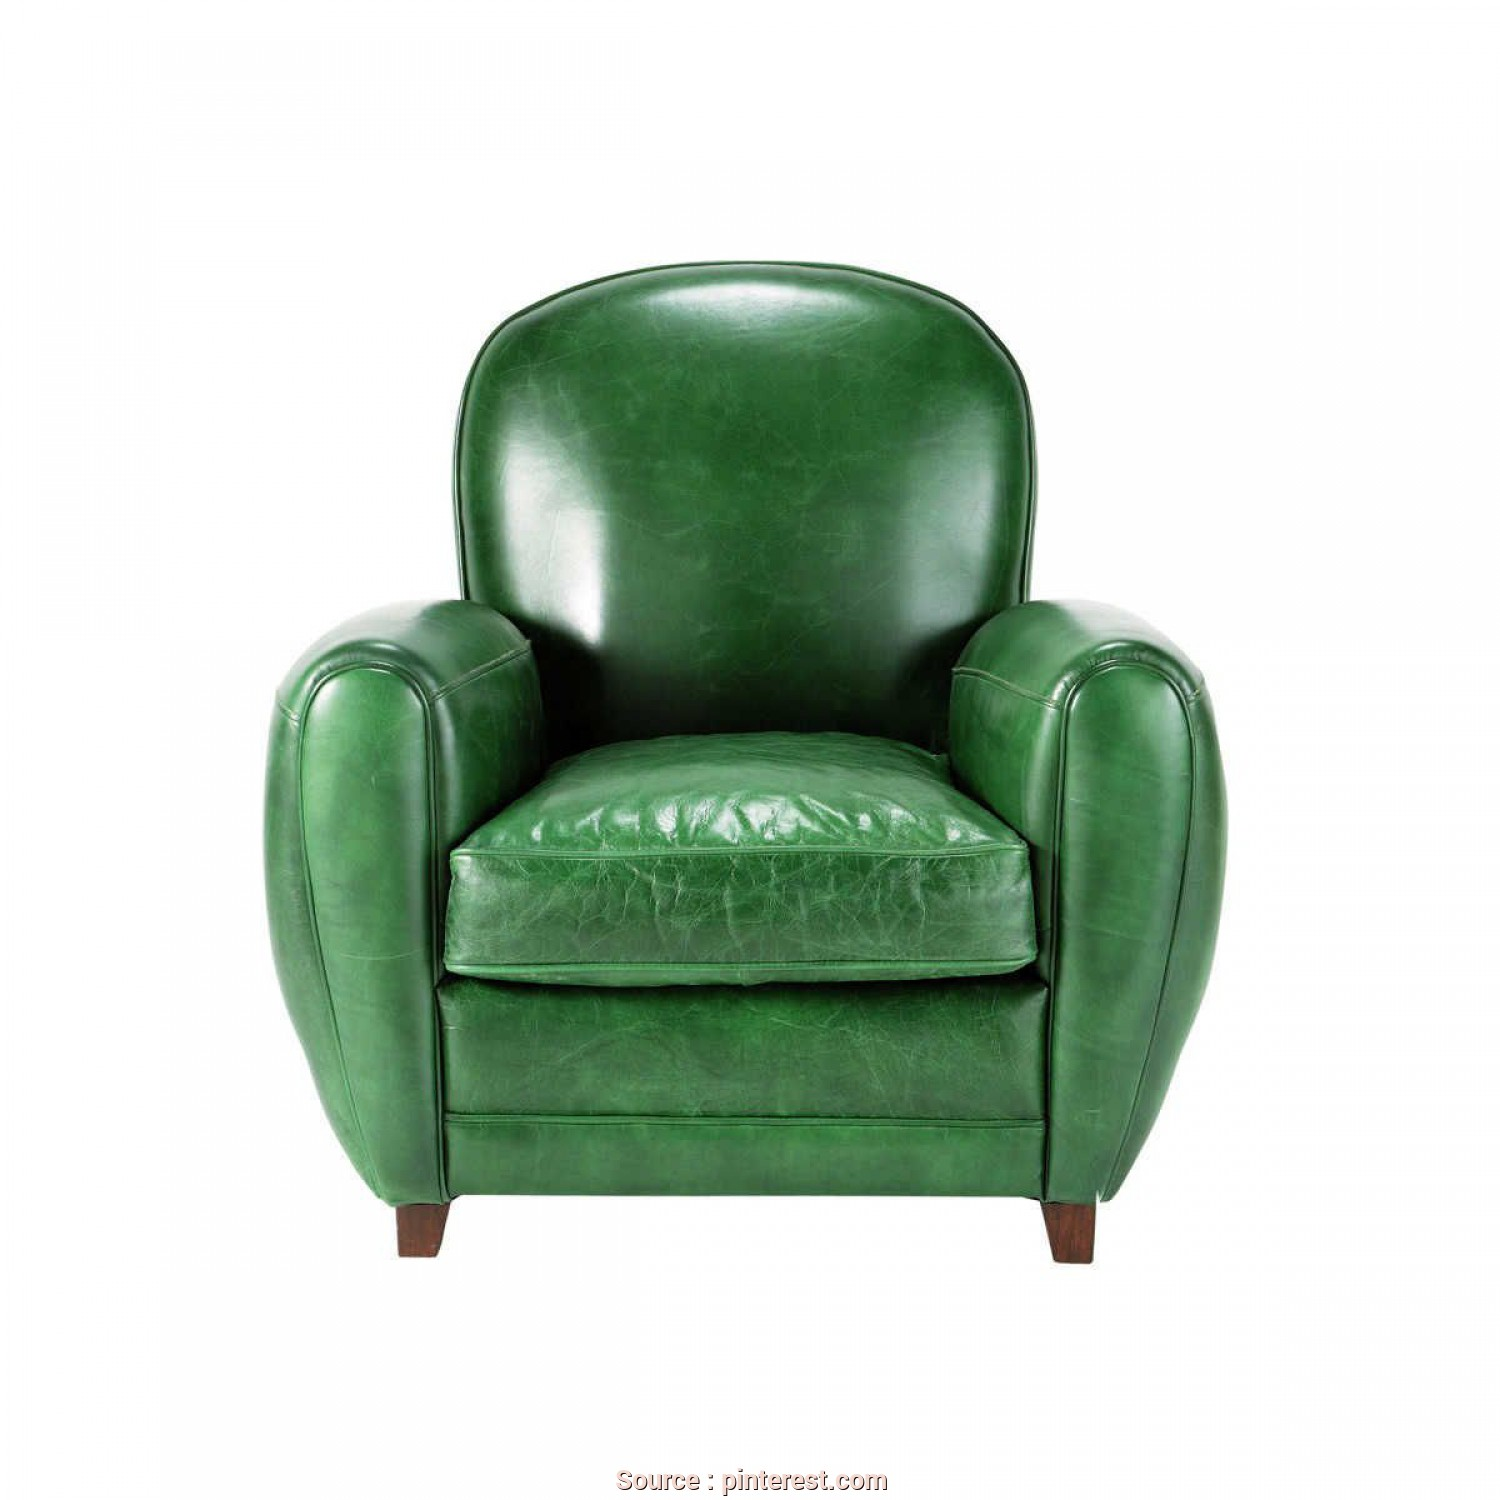 Poltrone Pelle Verde Vintage, Modesto The PERFECT Couch, Vintage OXFORD By Maison Du Monde, Home Sweet